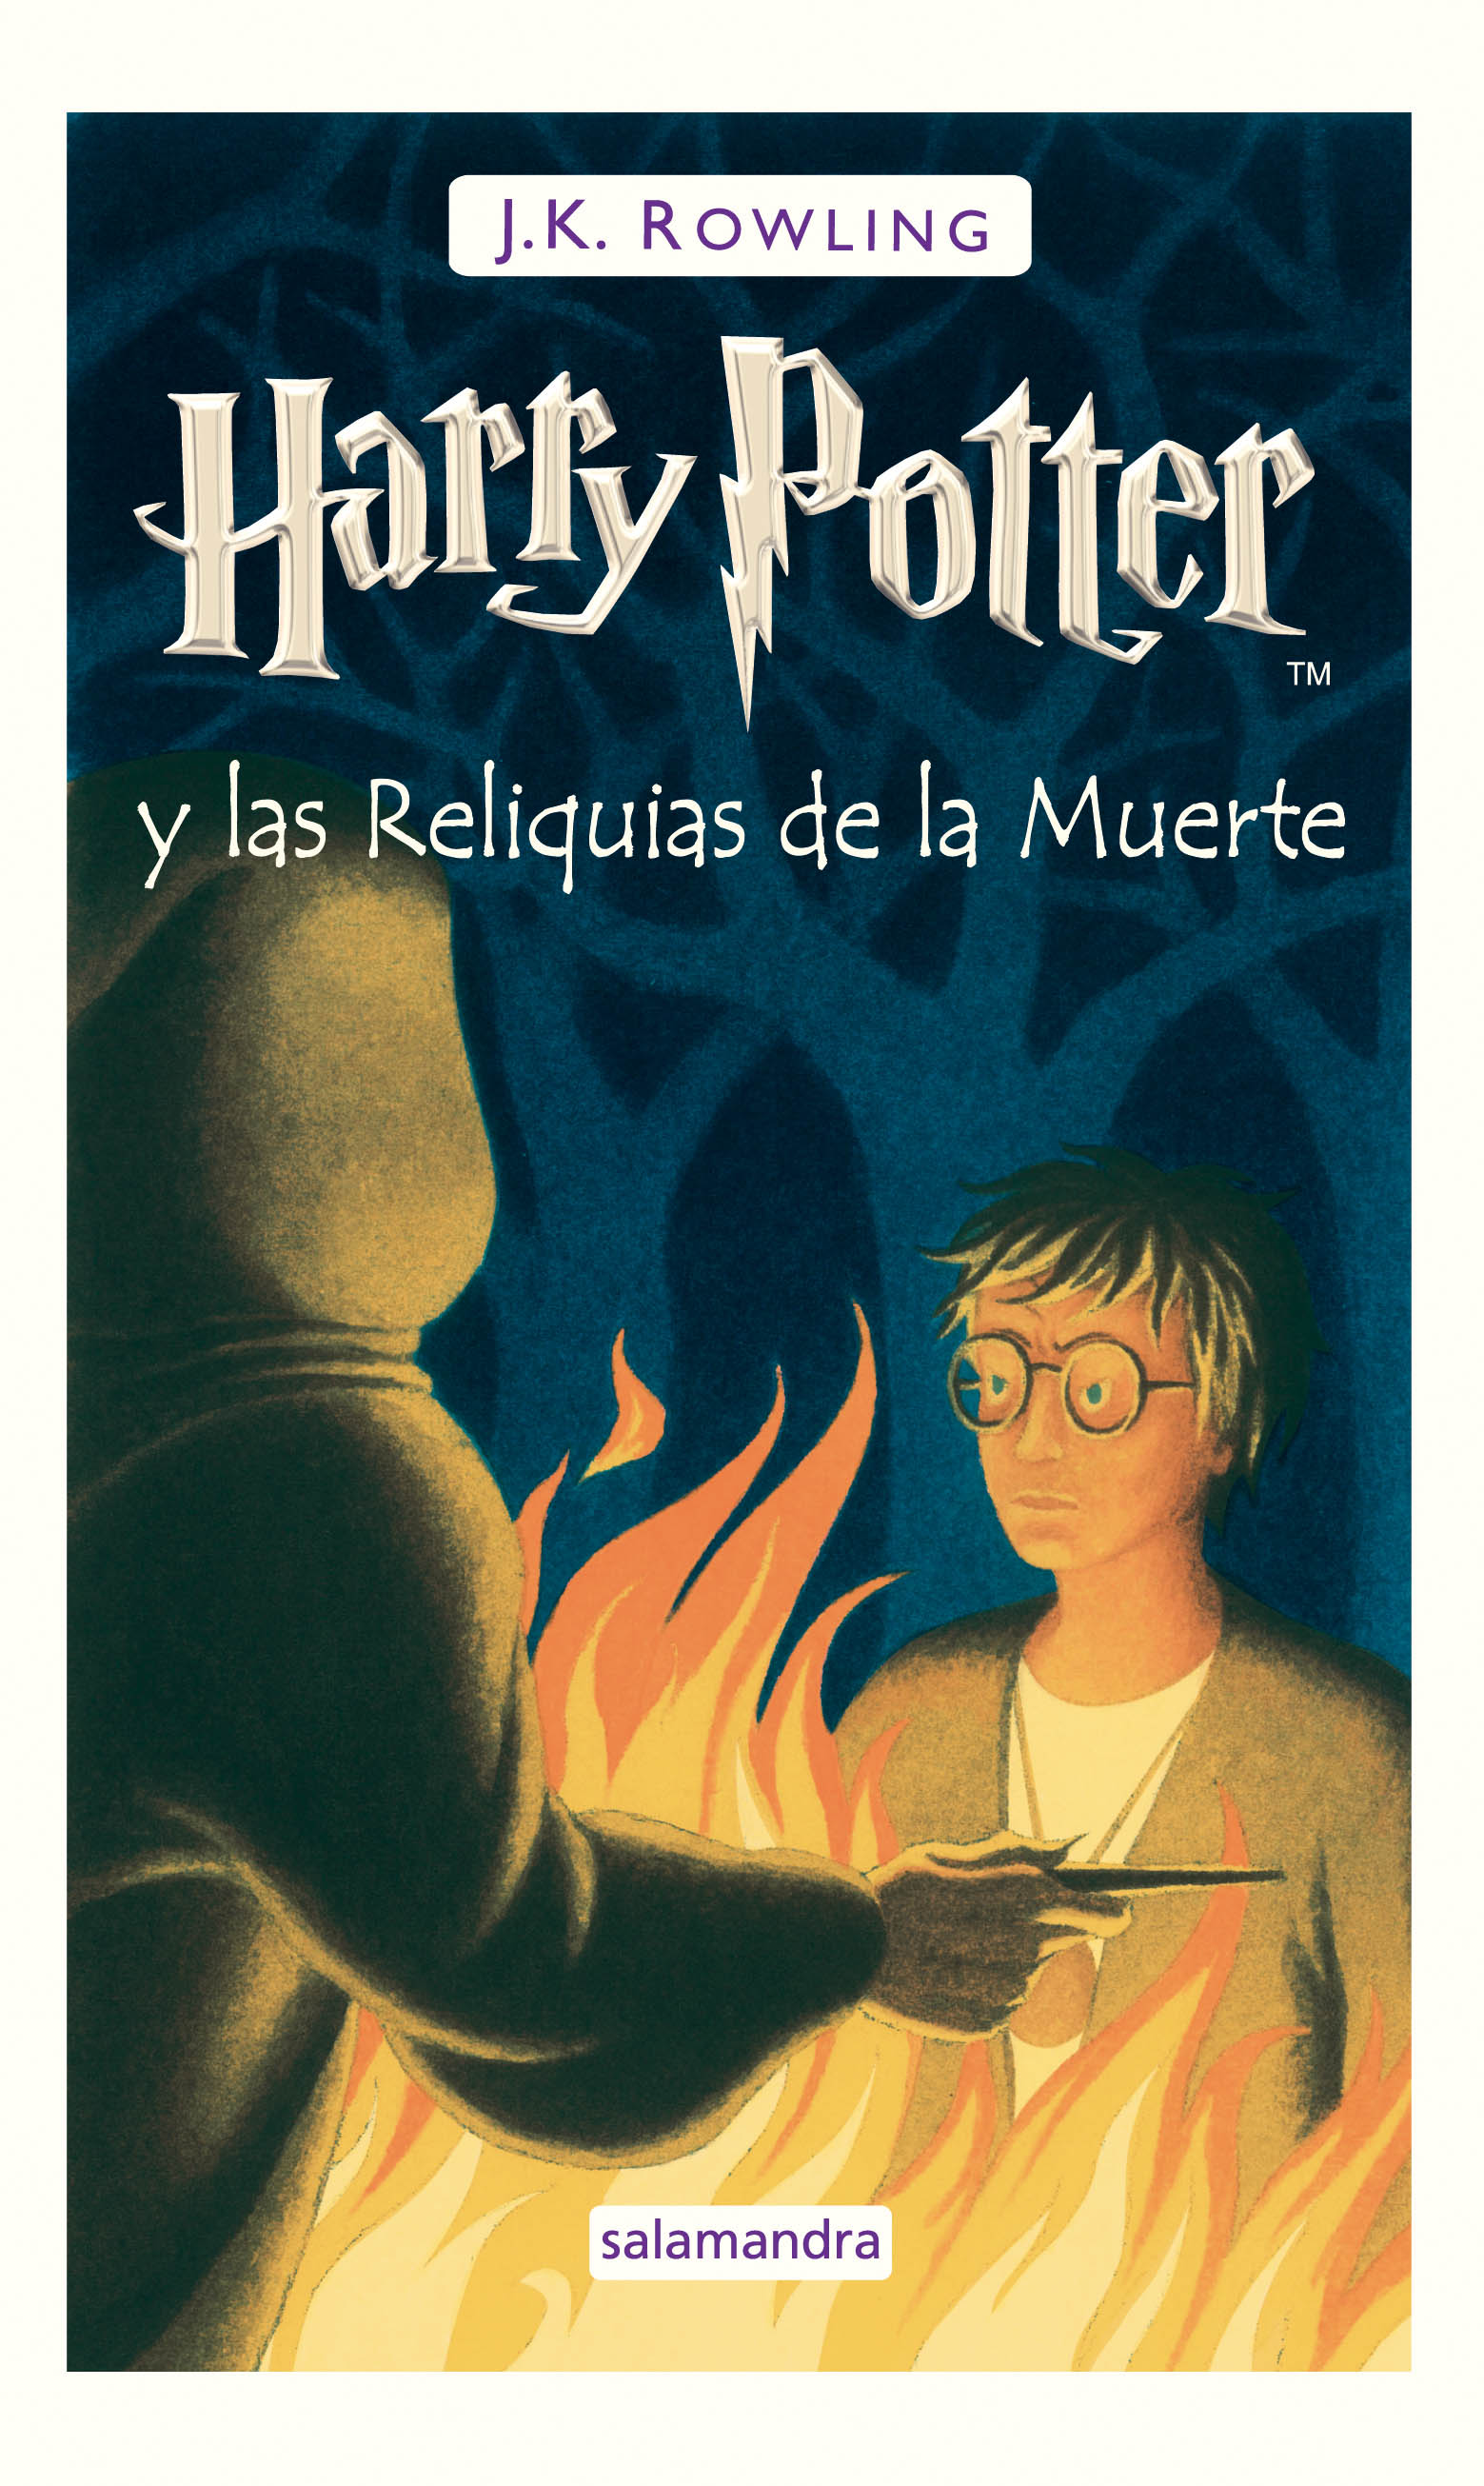 Harry Potter y las Reliquias de la Muerte | Harry Potter Wiki | Fandom